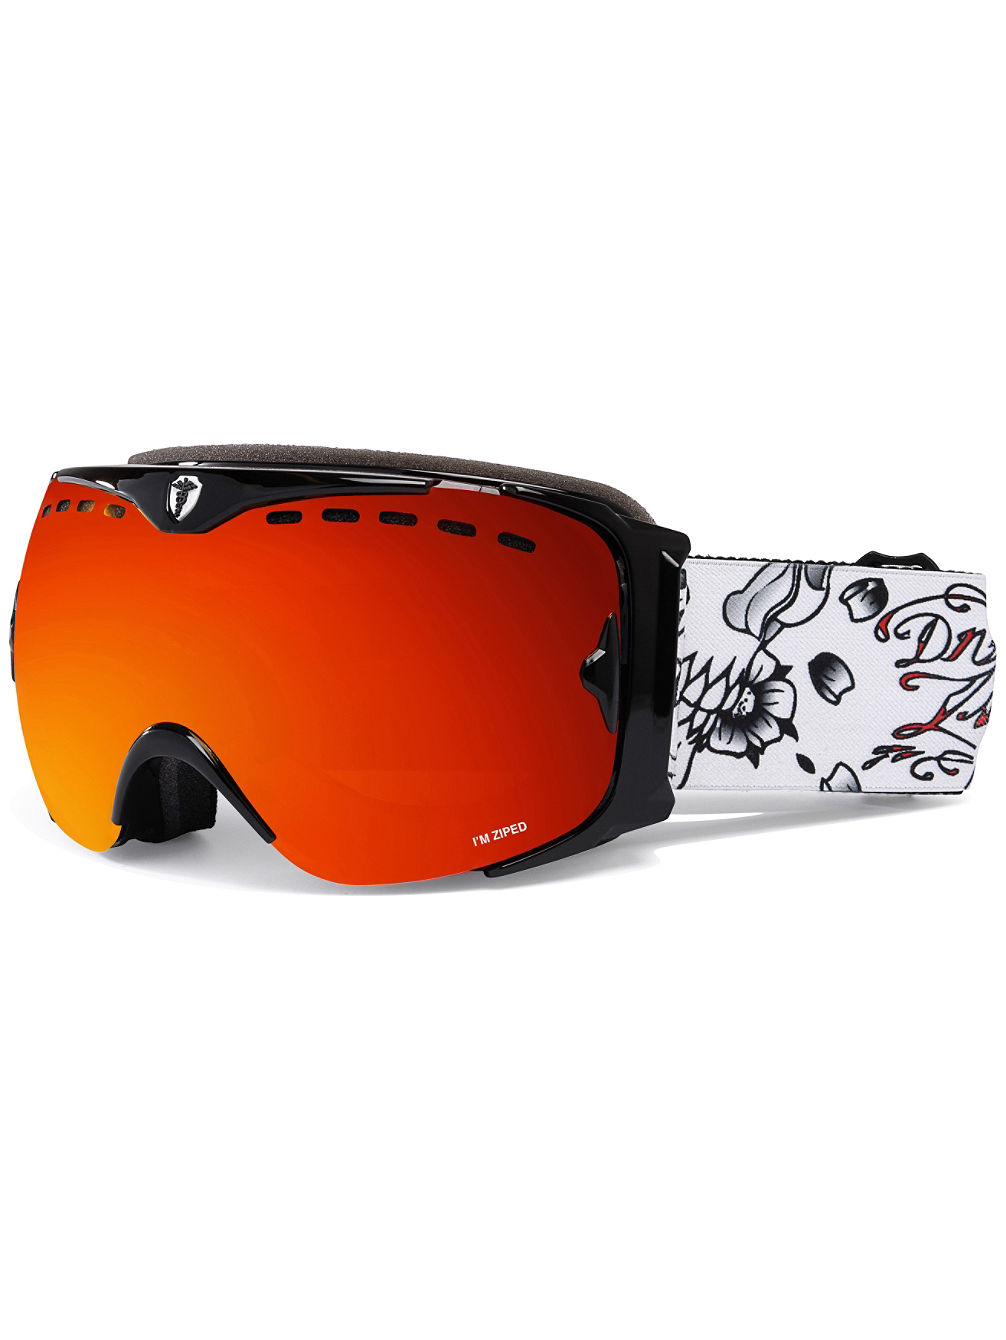 Guard Level 6 Black/Tattoo Goggle